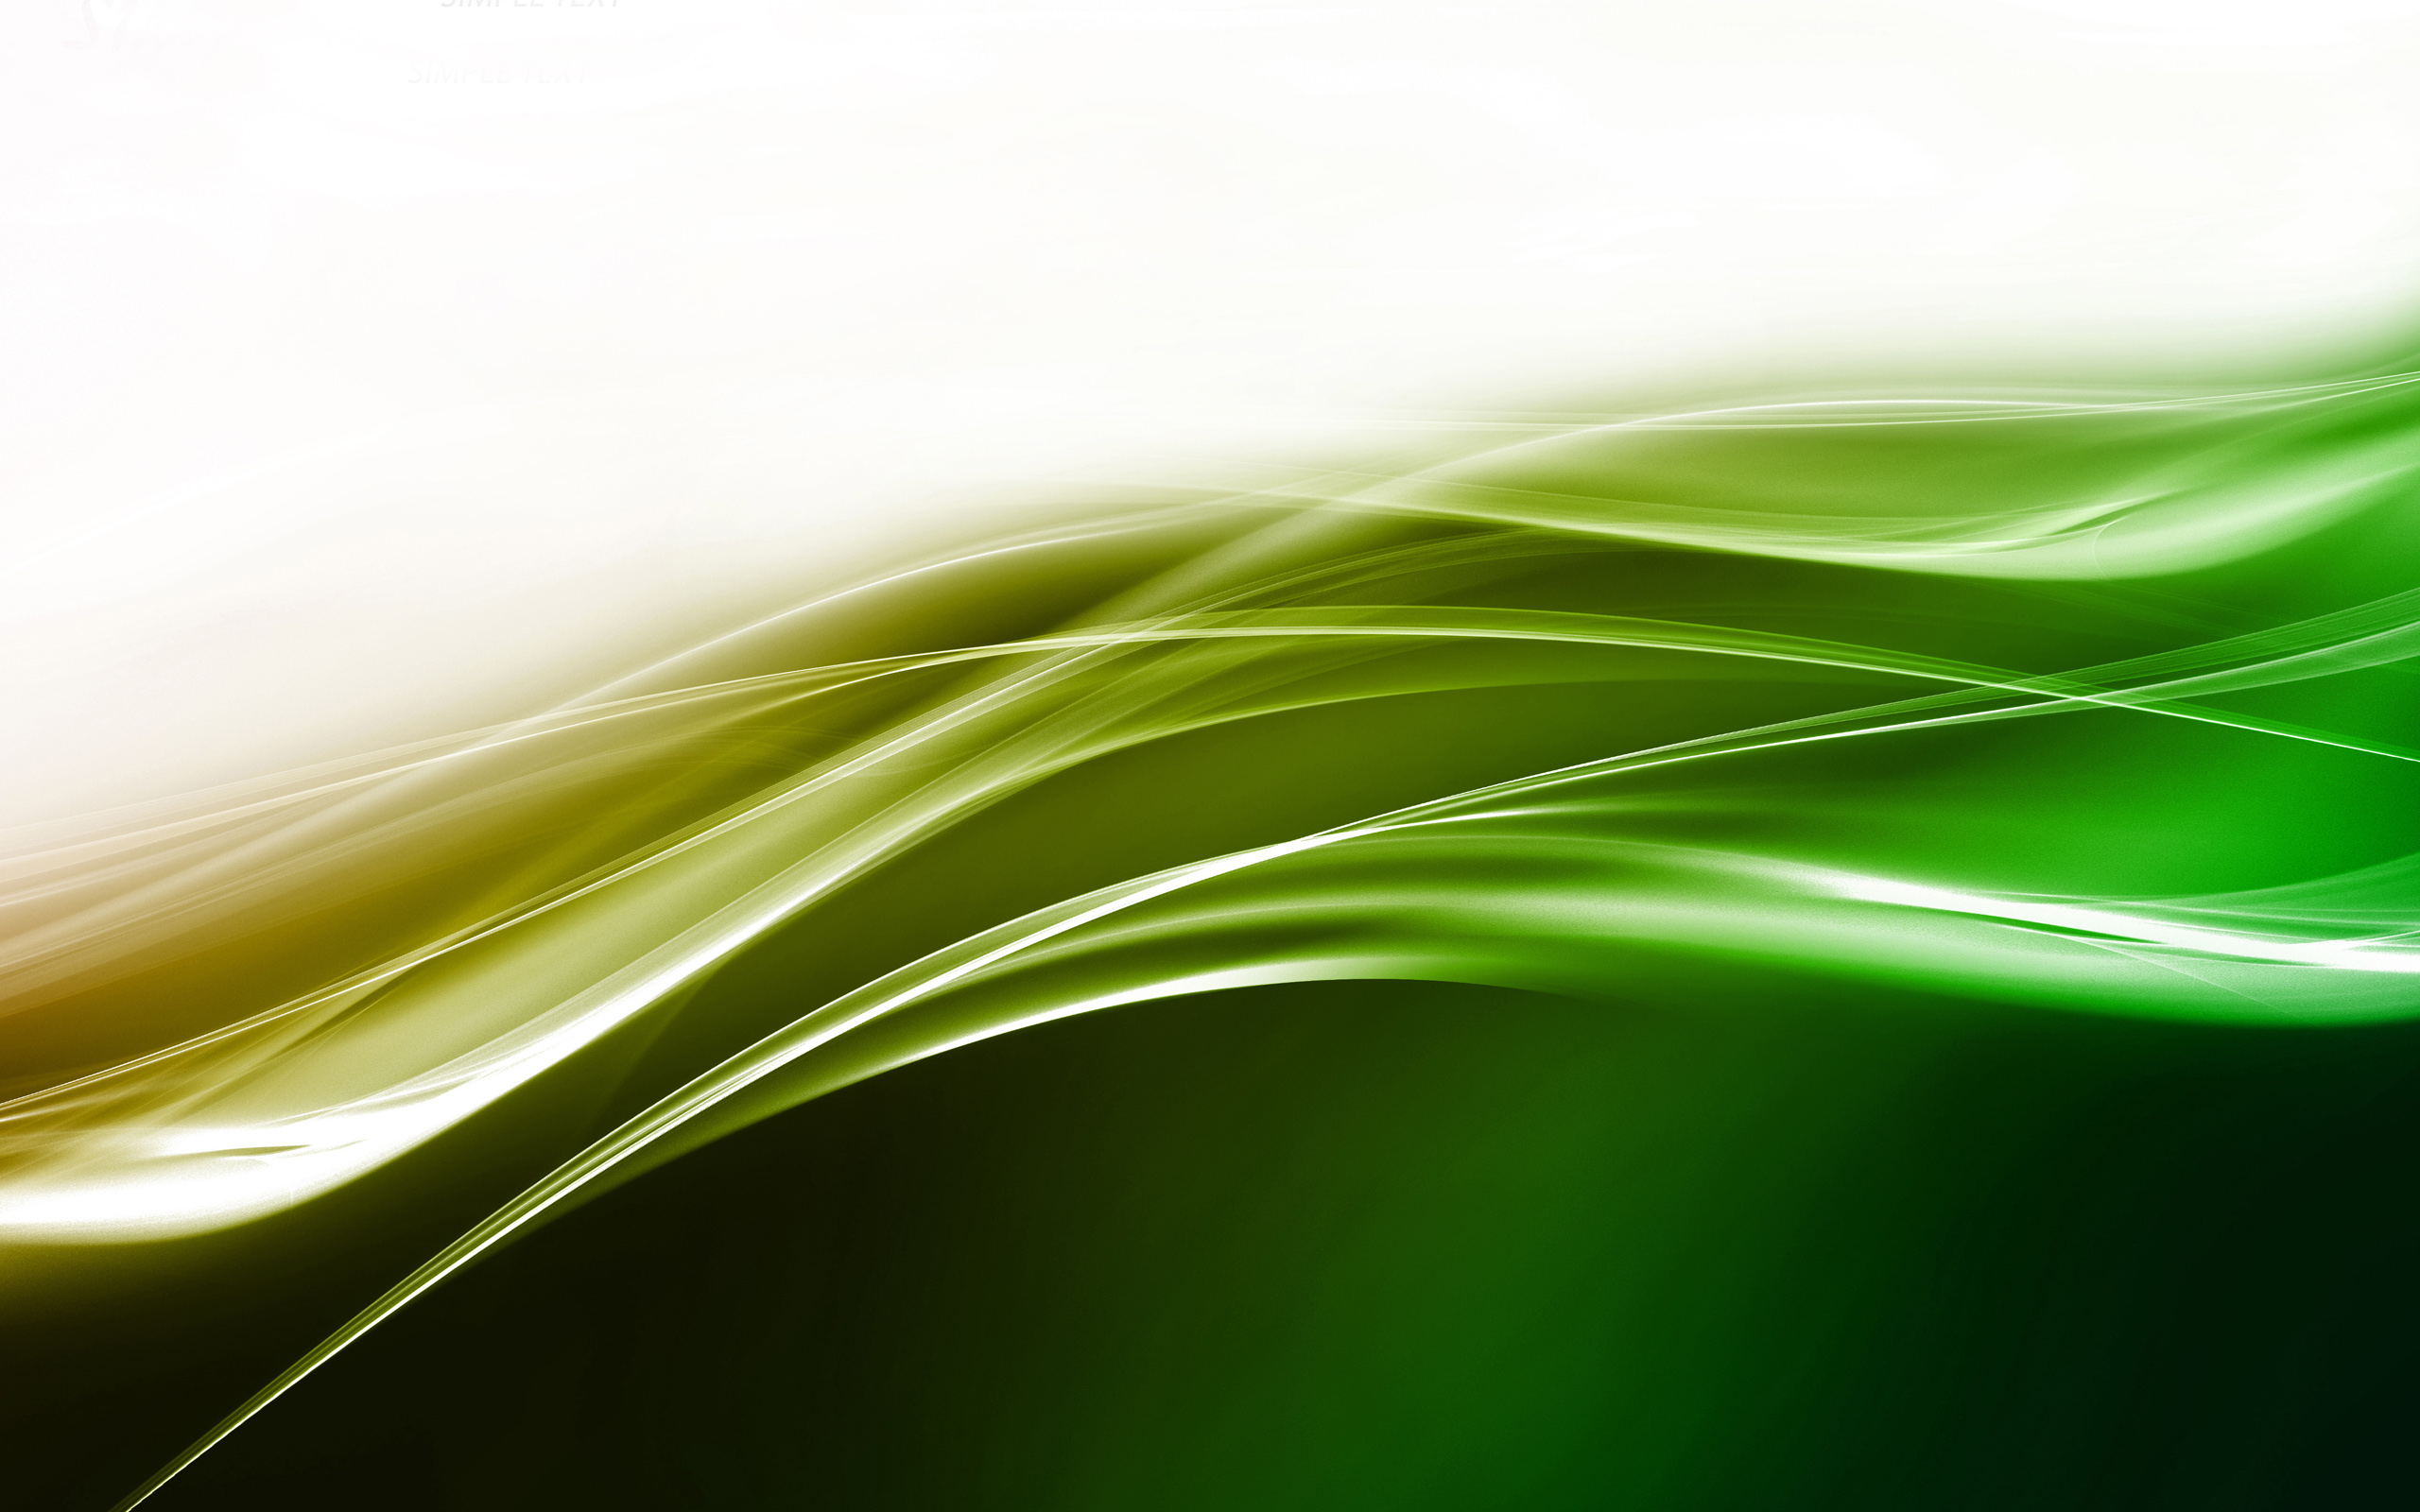 green wallpaper design hd - photo #34